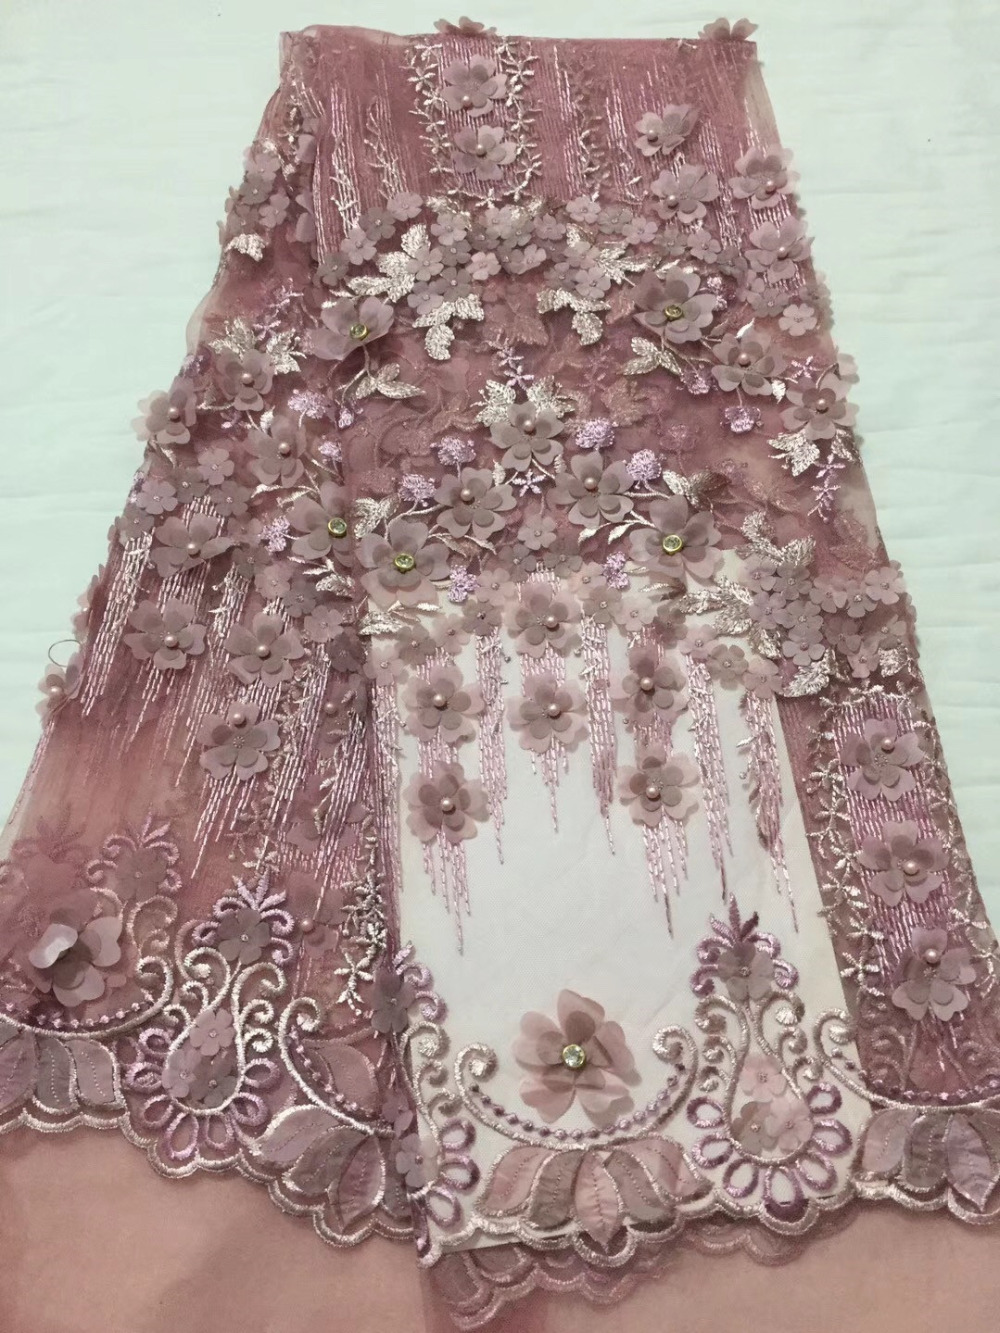 Multicolor African Wedding Dress Beaded Stones Lace Guipure Embroidery Tulle Applique Lace Nigeria 3D French Lace Fabric